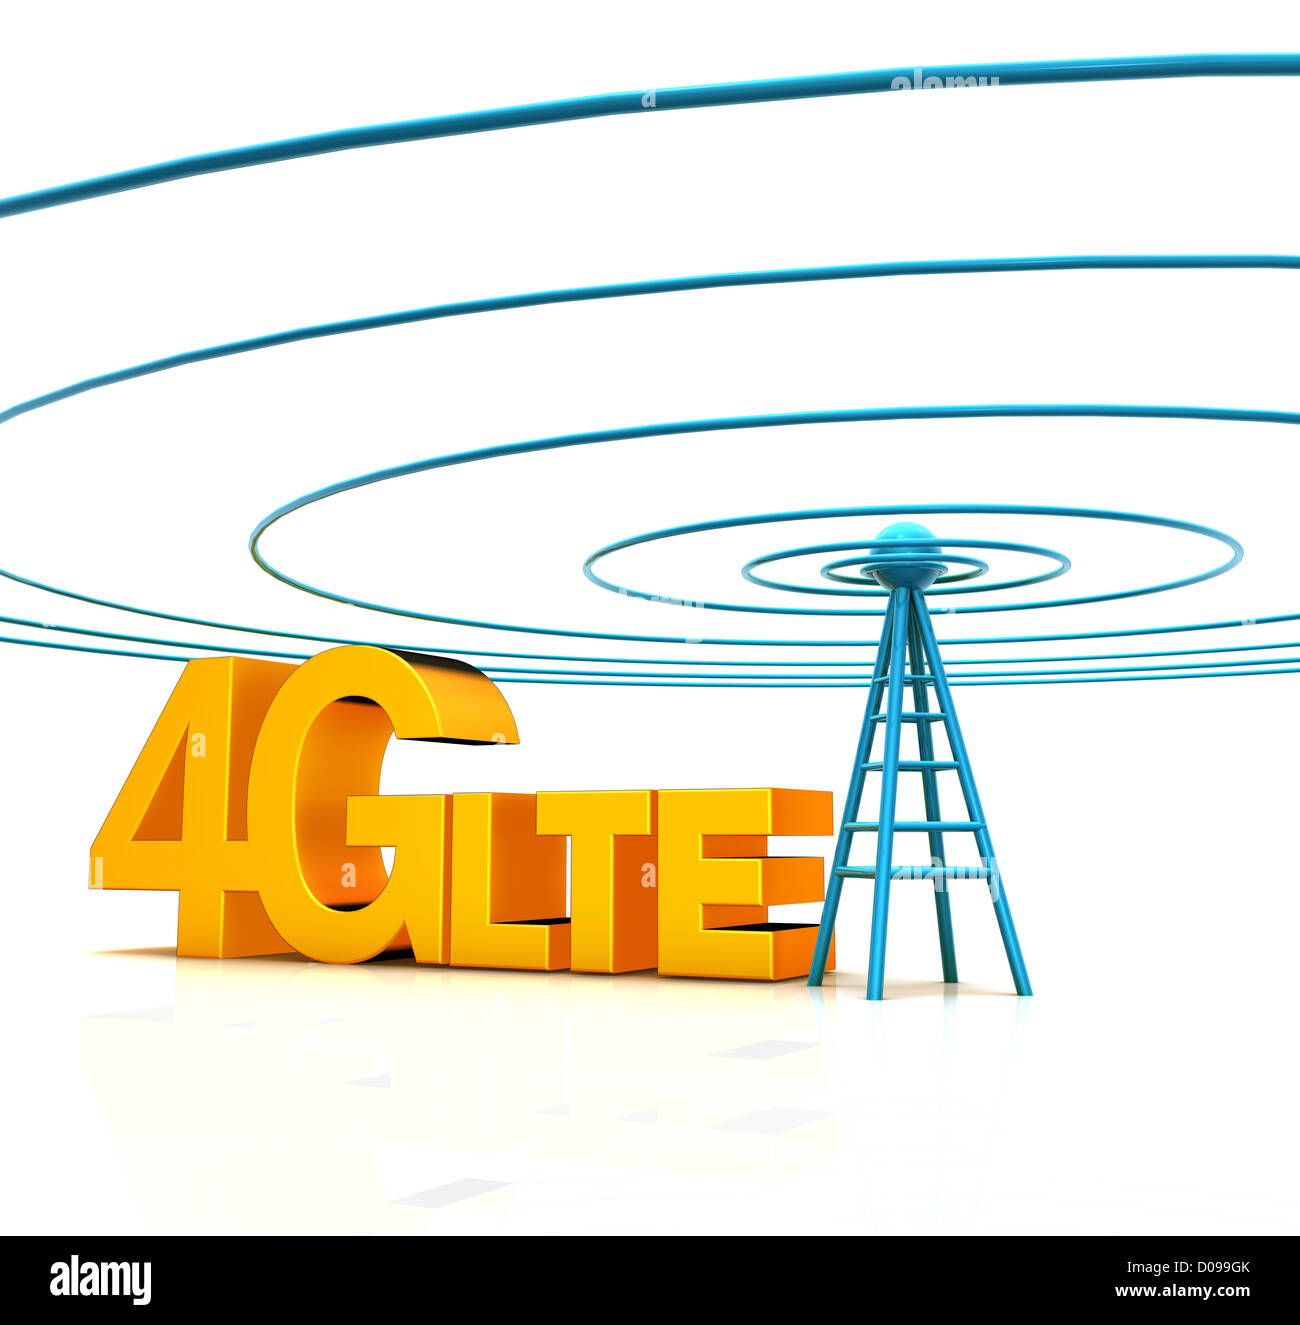 Mobile antenna. Communication concept and 4g Wireless Technology. - Stock Image